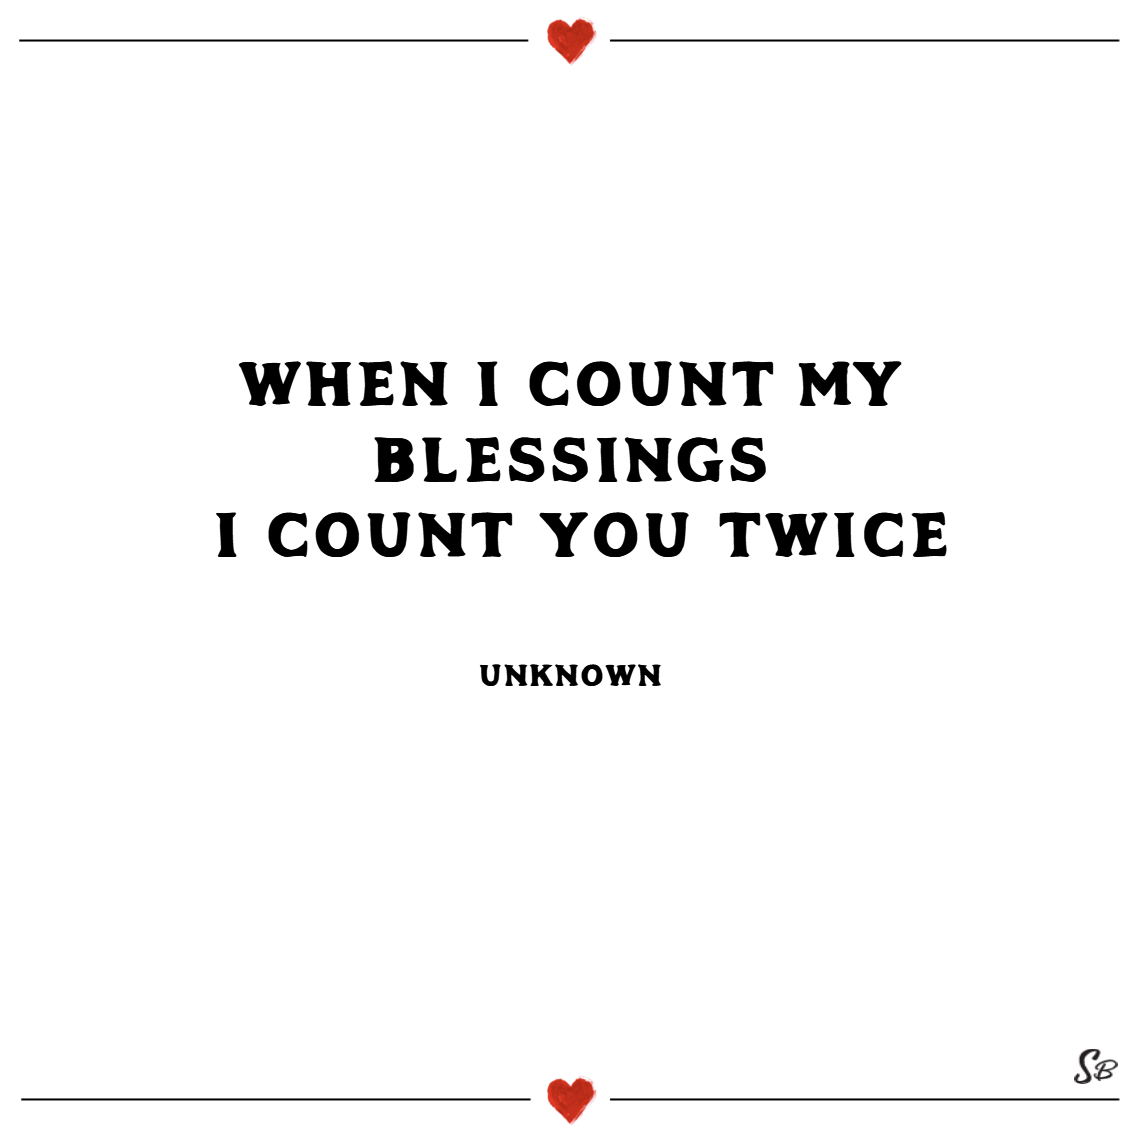 When i count my blessings i count you twice. – unknown